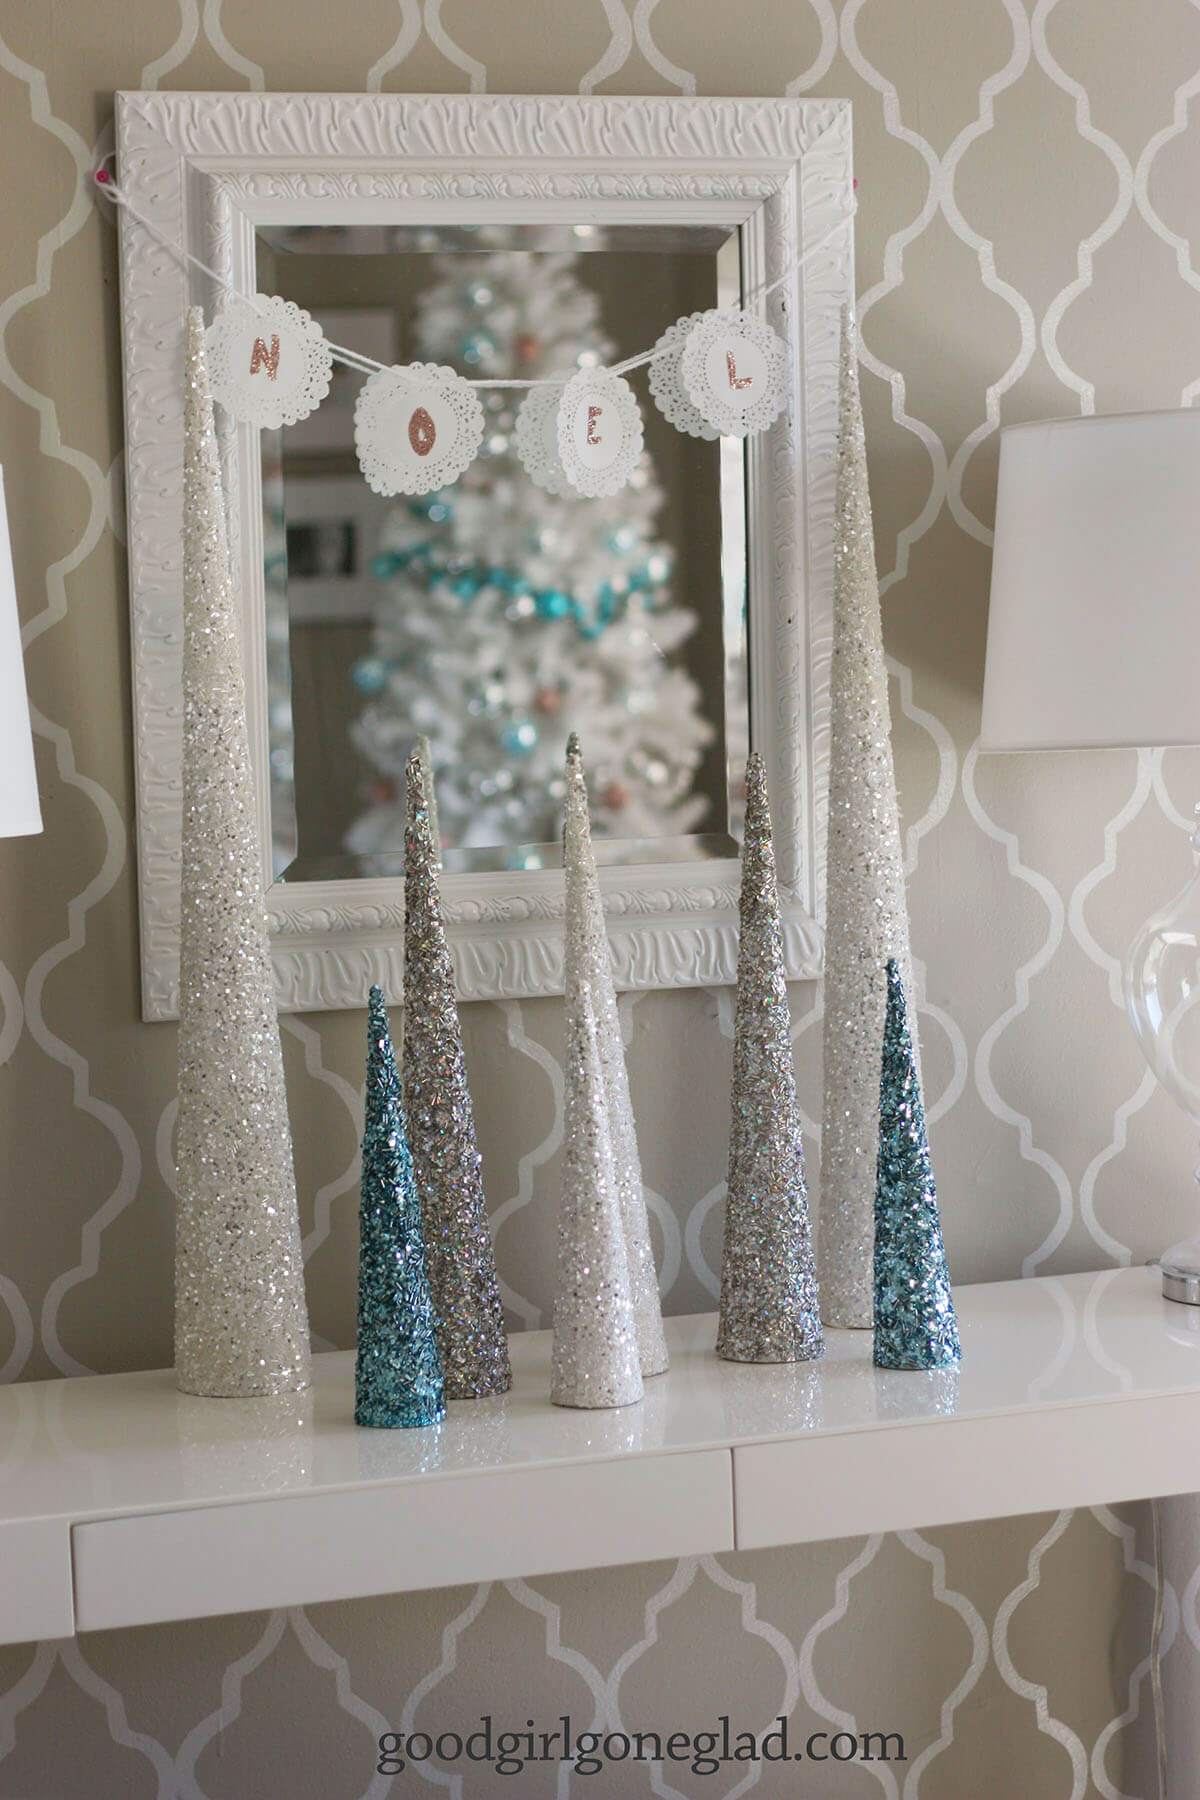 A Sparkling Silvery Forest Display